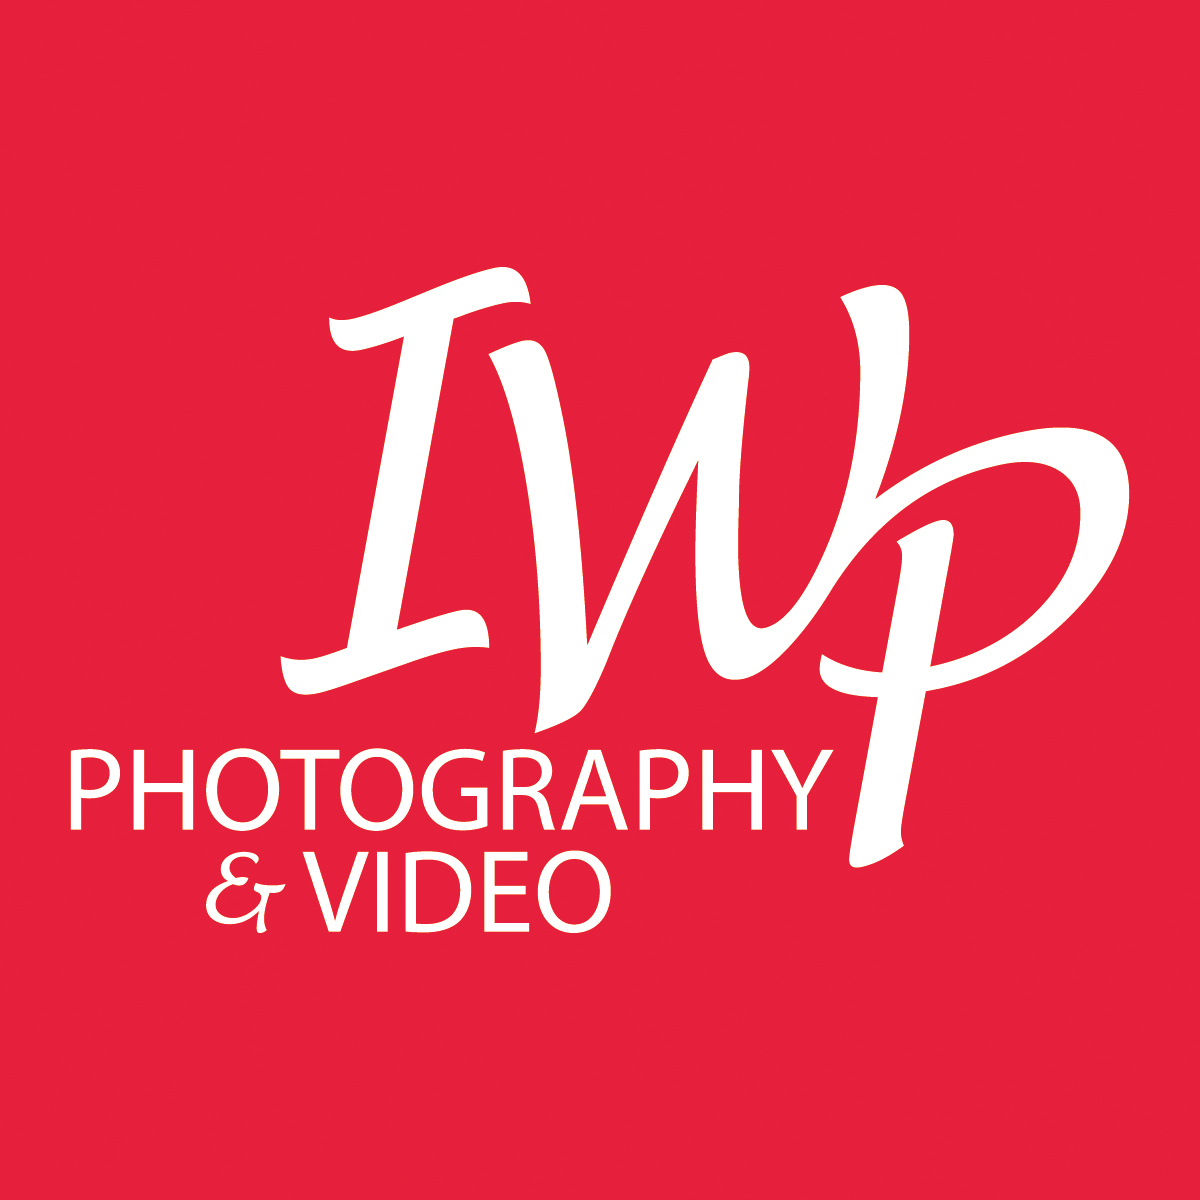 IWP Photography & Video